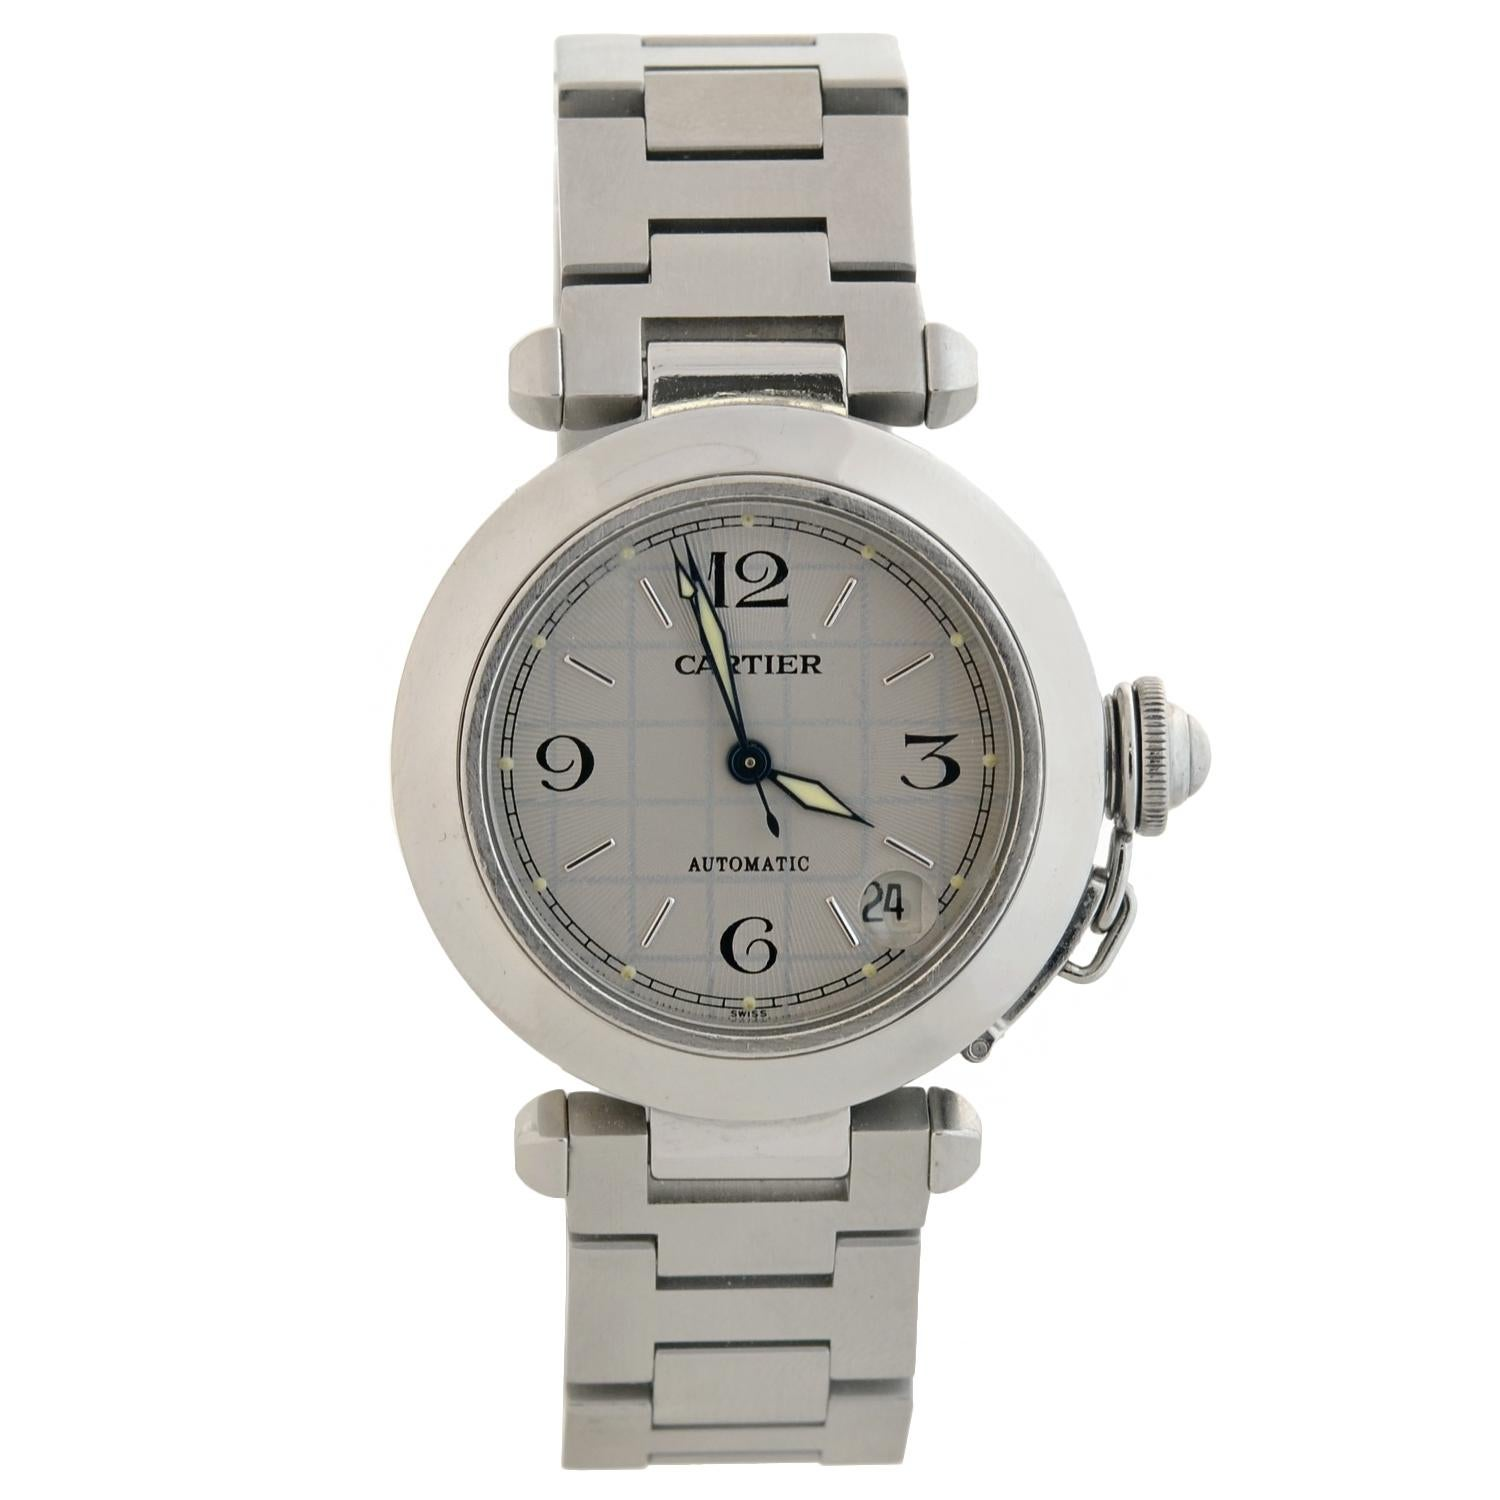 01c60be1a1c5b Cartier Pasha C 2324 Stainless Steel Watch in Box For Sale at 1stdibs